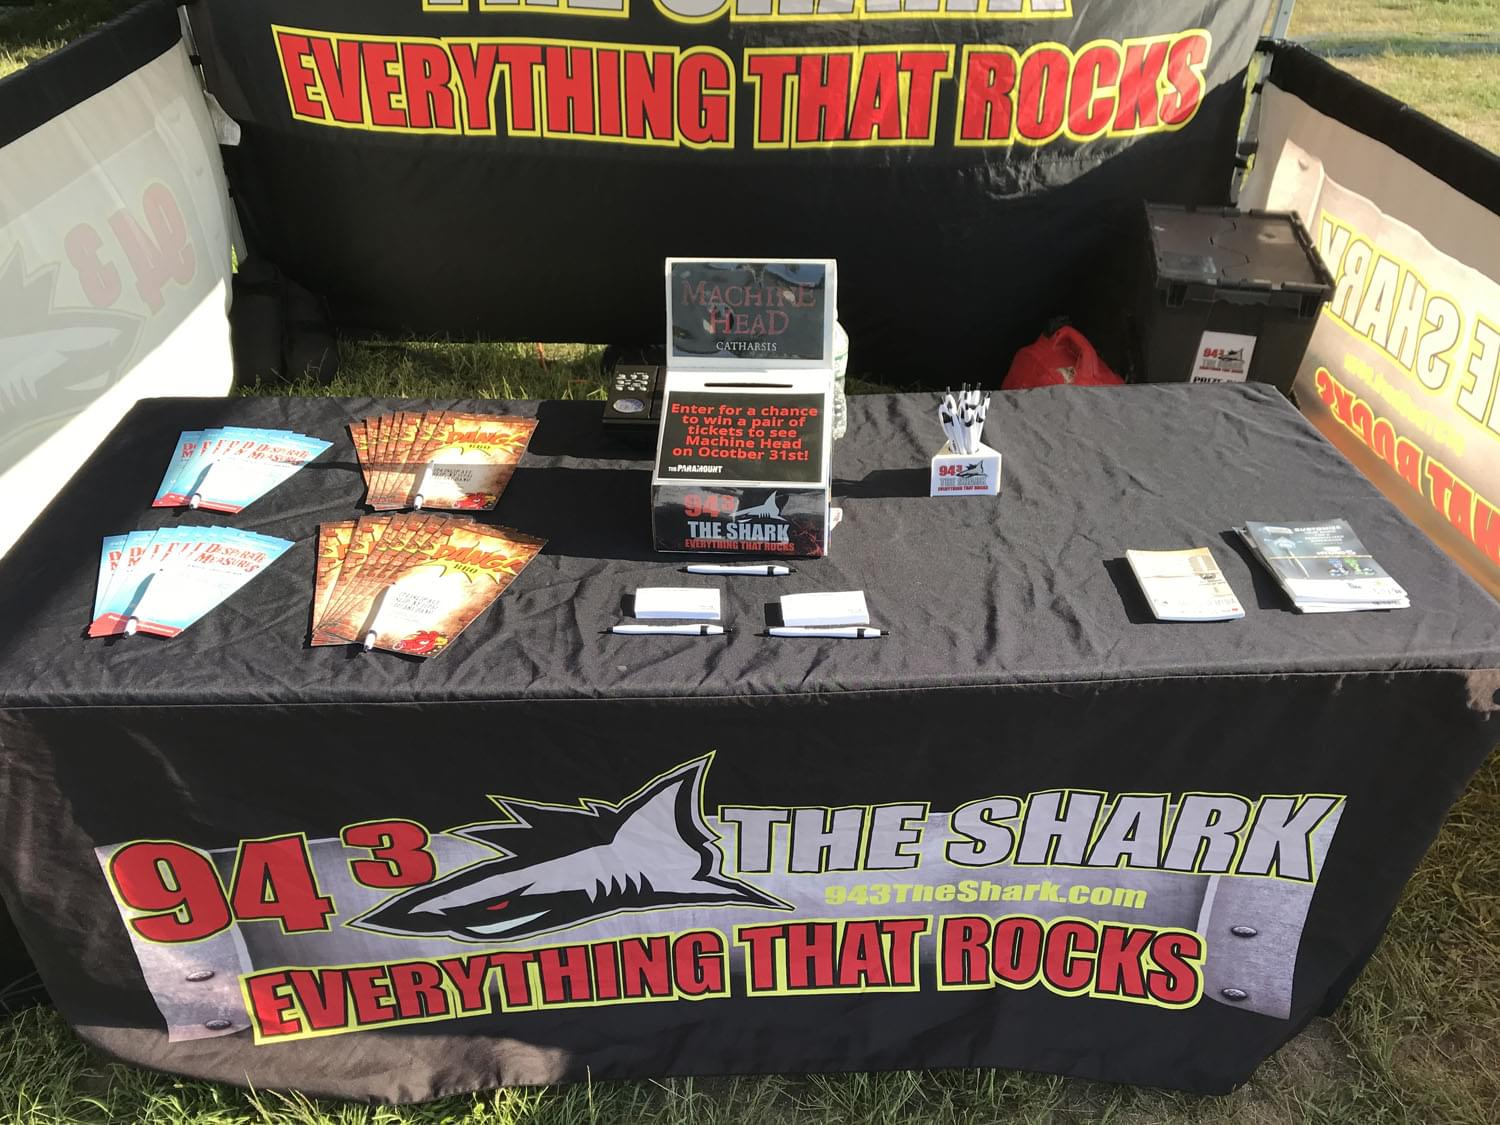 94.3 The Shark at Mother Cabrini Festival